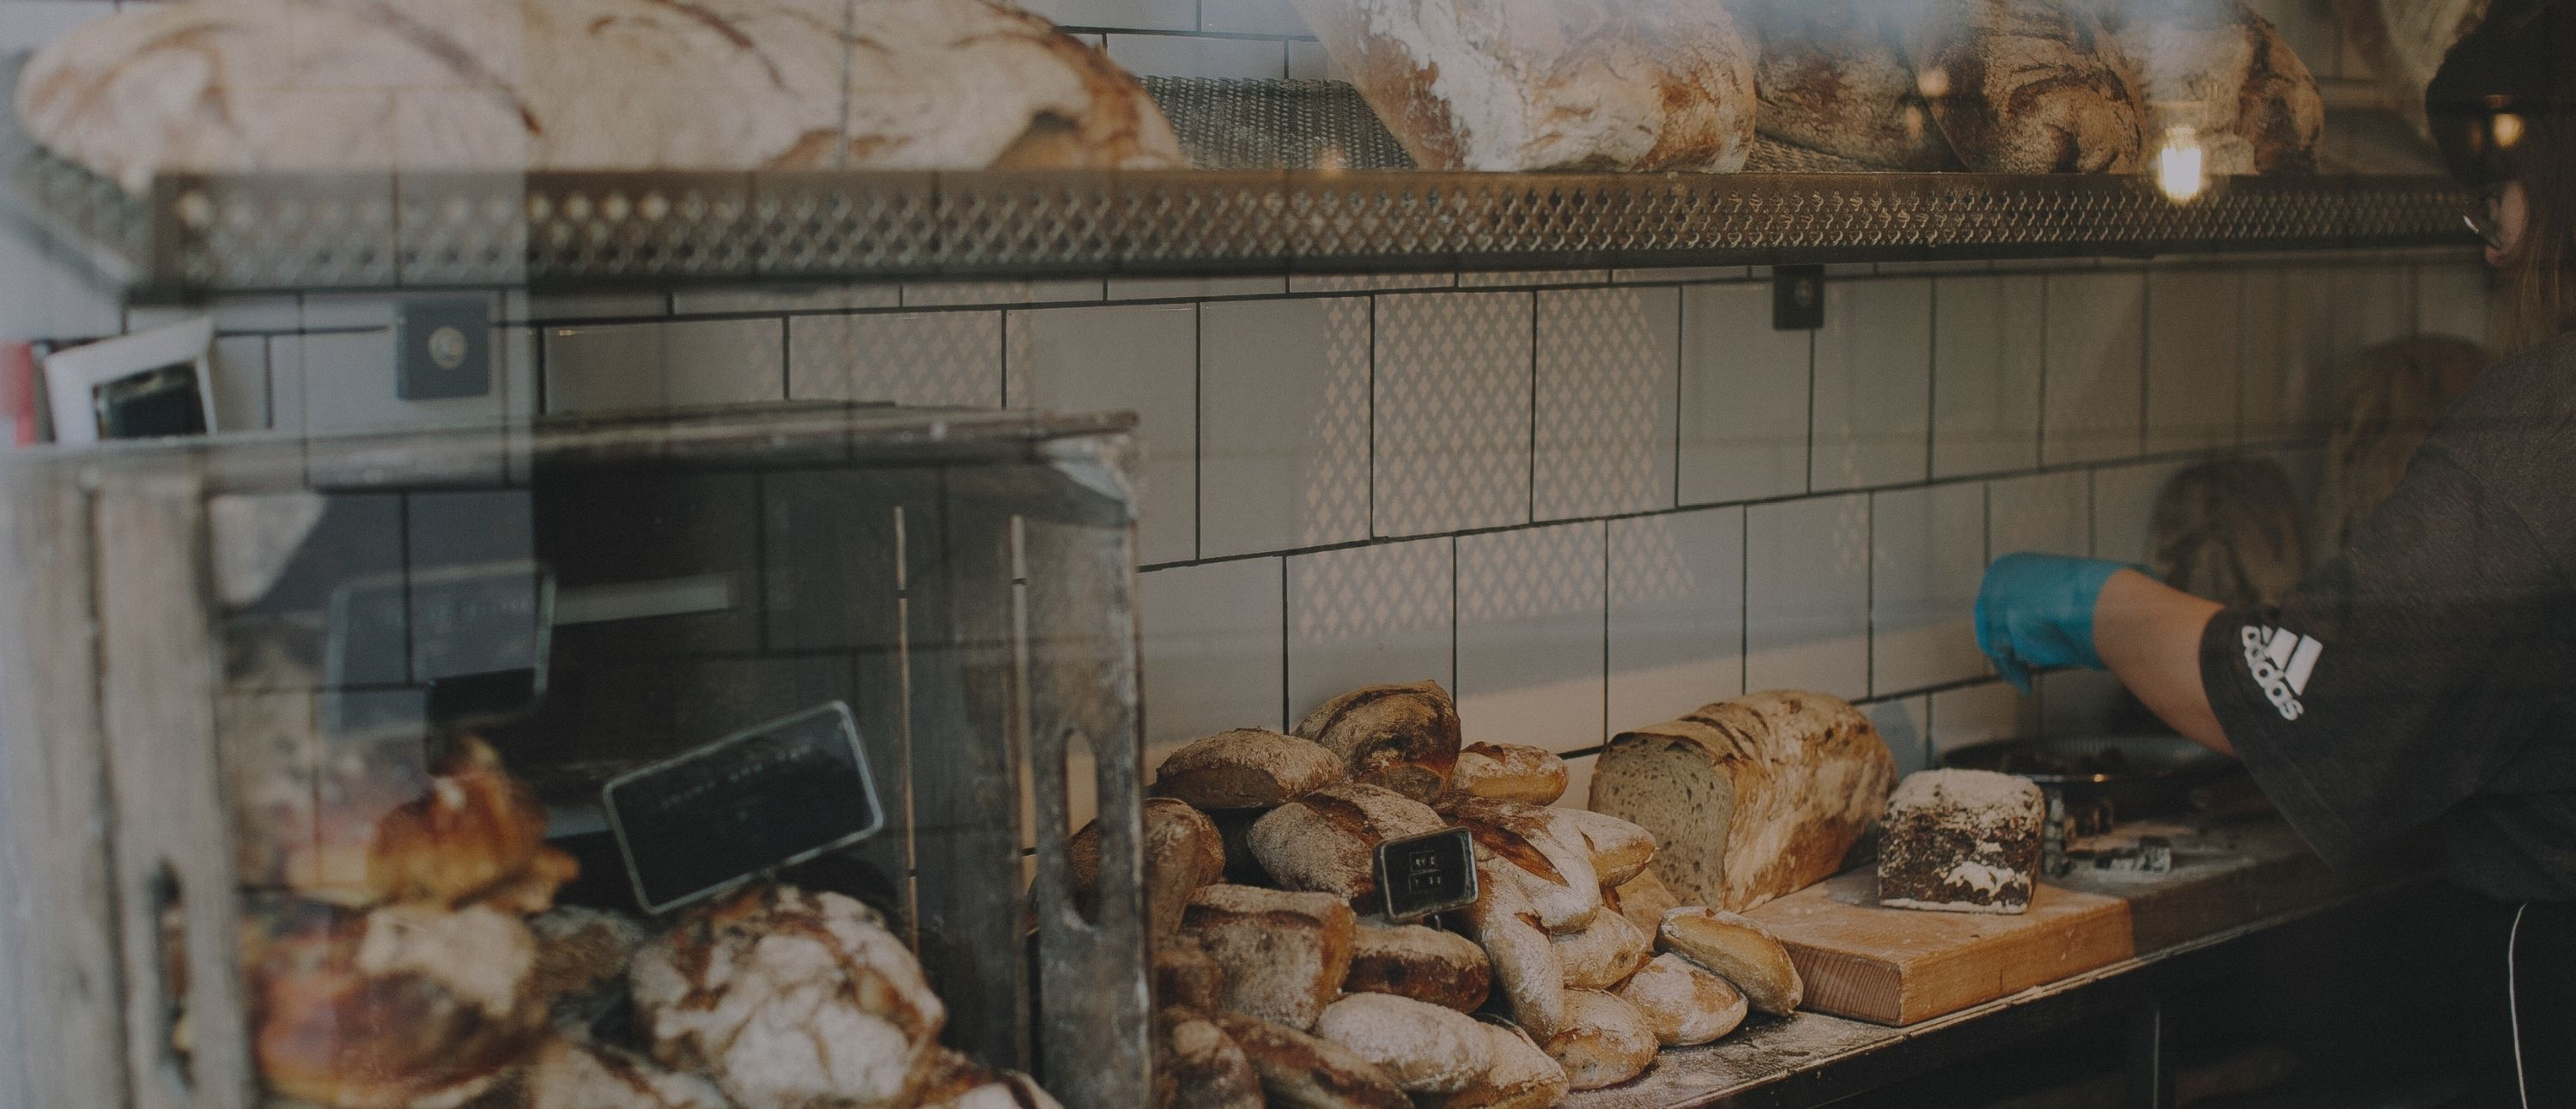 Bakery shelves with bread display